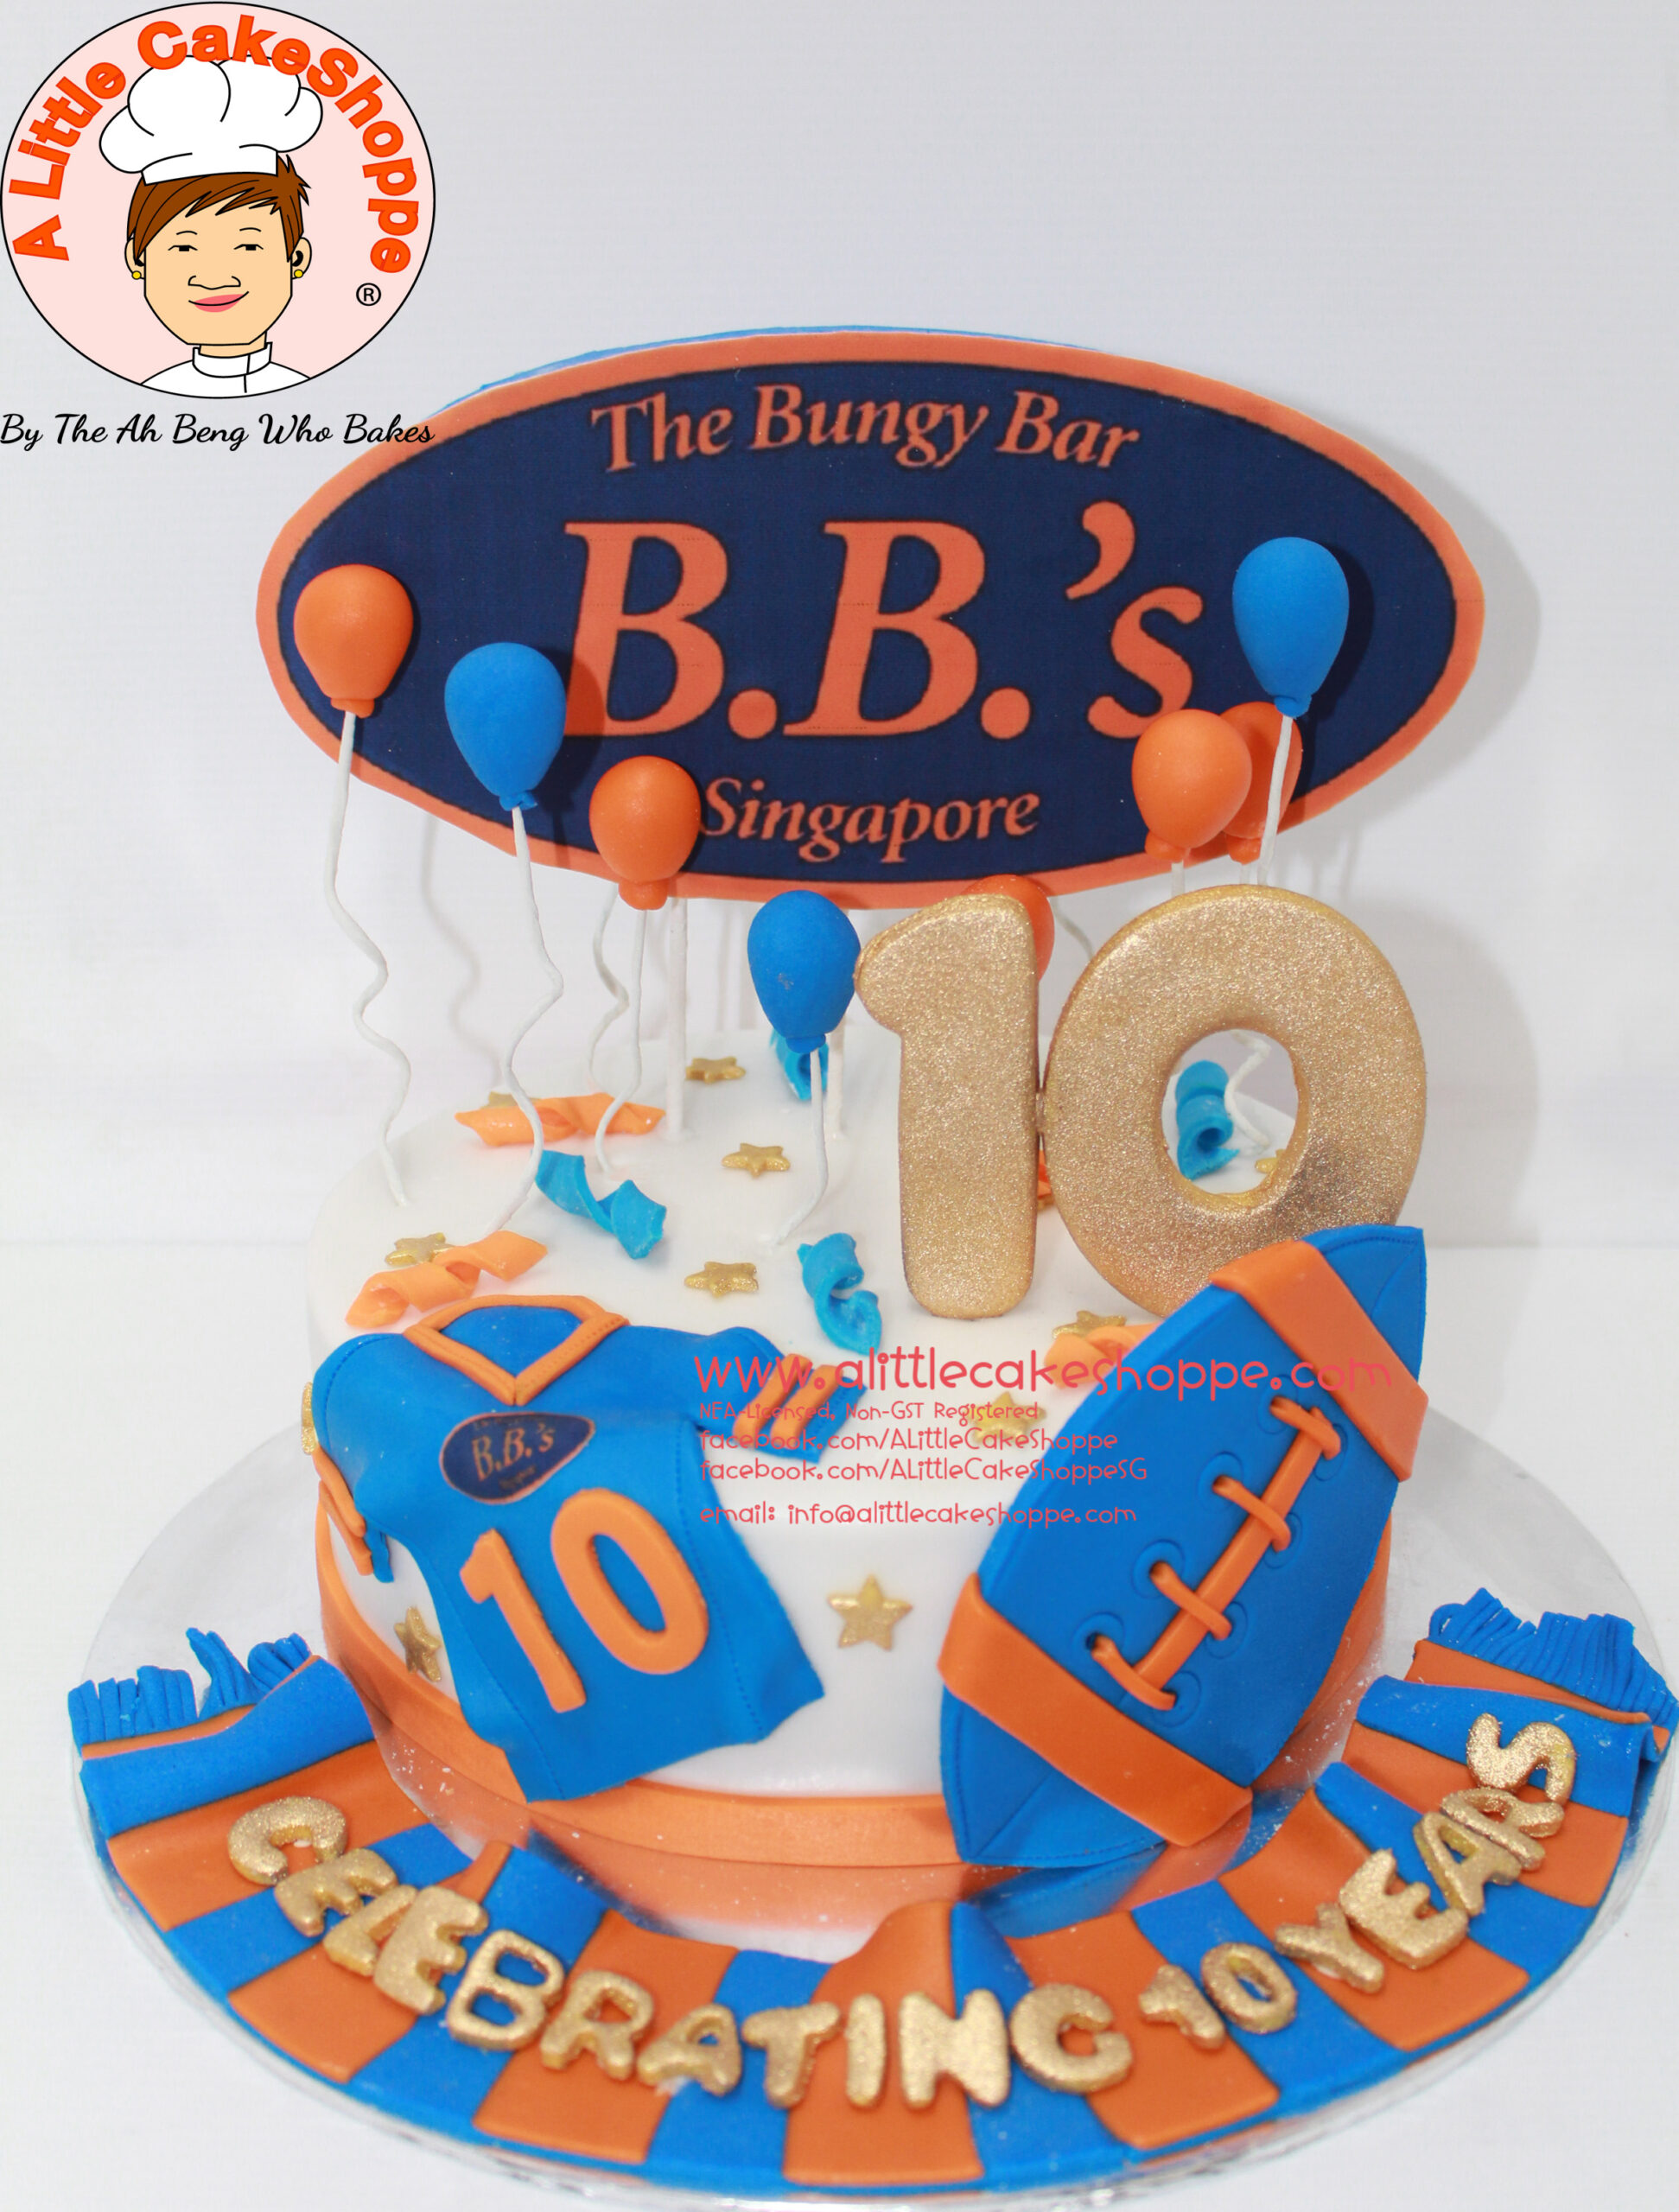 Best Customised Cake Singapore custom cake 2D 3D birthday cake cupcakes desserts wedding corporate events anniversary 1st birthday 21st birthday fondant fresh cream buttercream cakes alittlecakeshoppe a little cake shoppe compliments review singapore bakers SG cakeshop ah beng who bakes the bungy bar